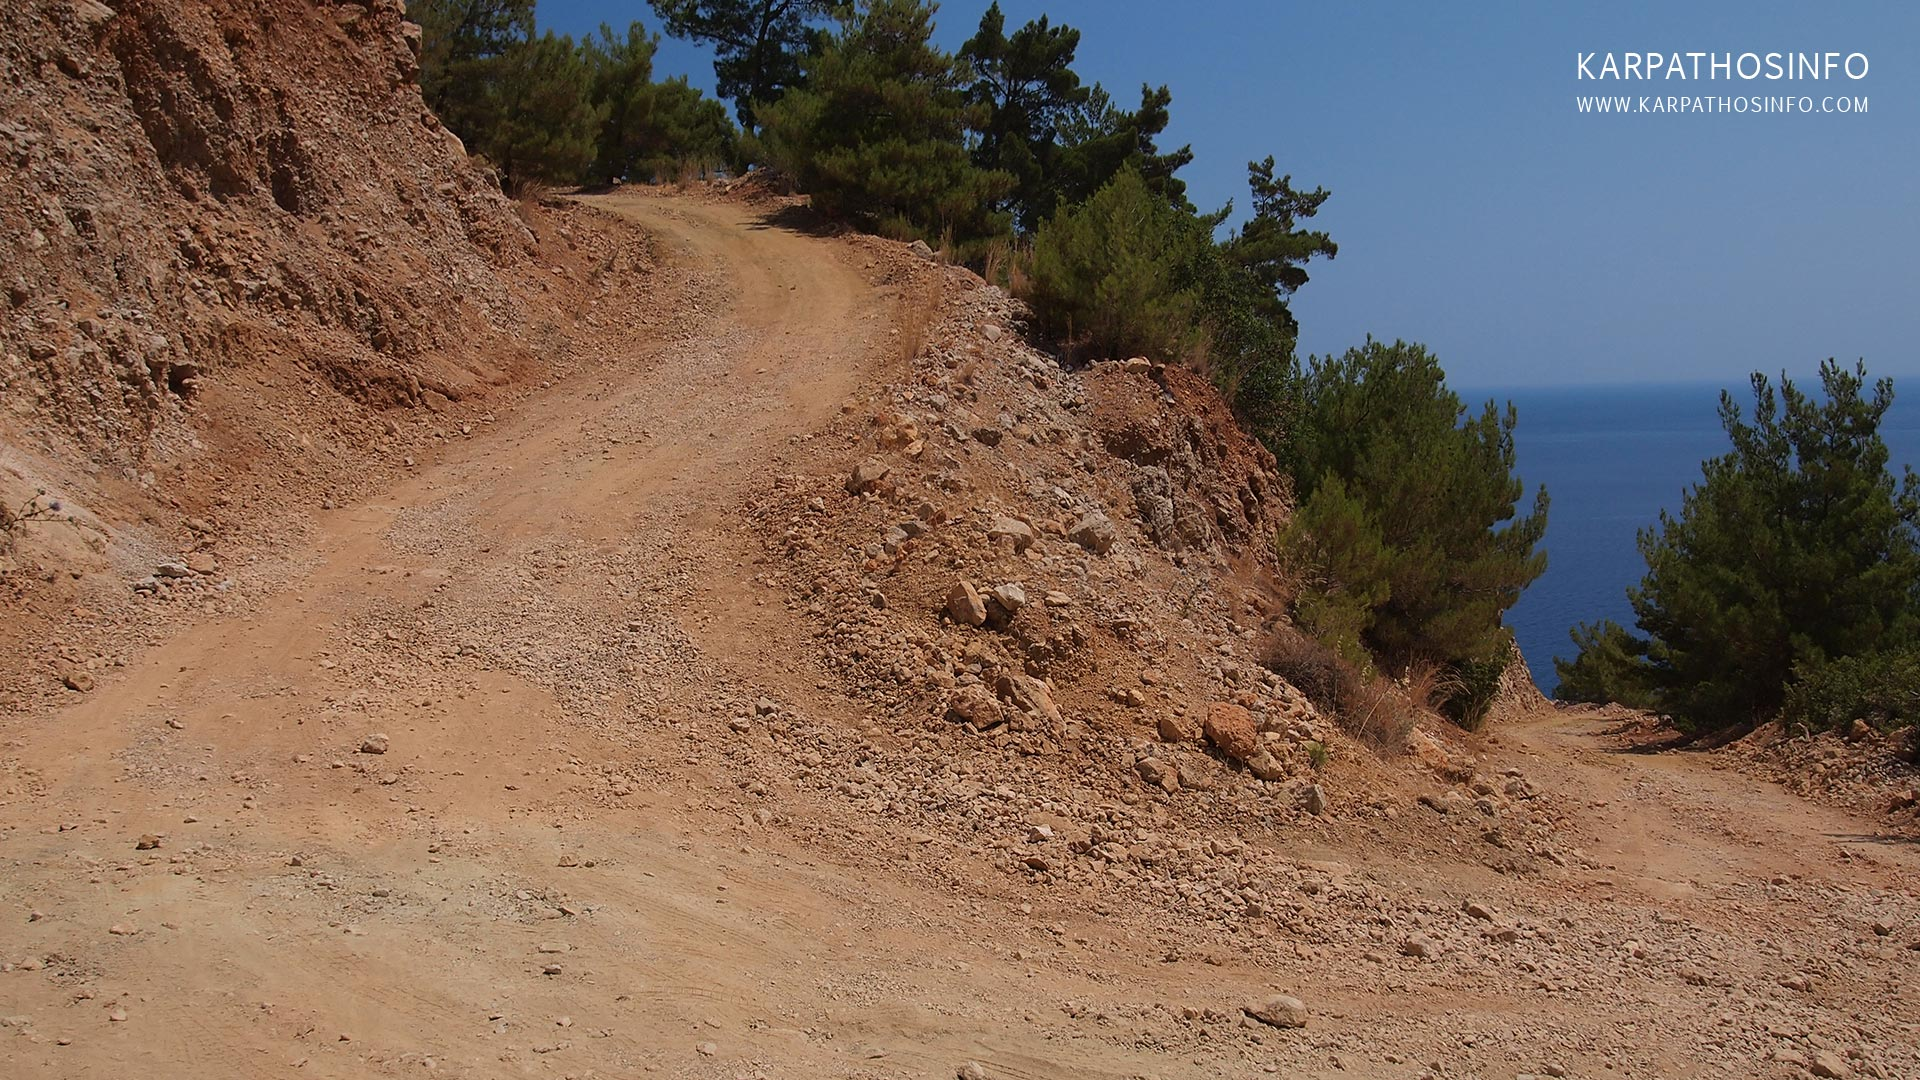 images/slider/off-road-driving-4x4-in-karpathos.jpg